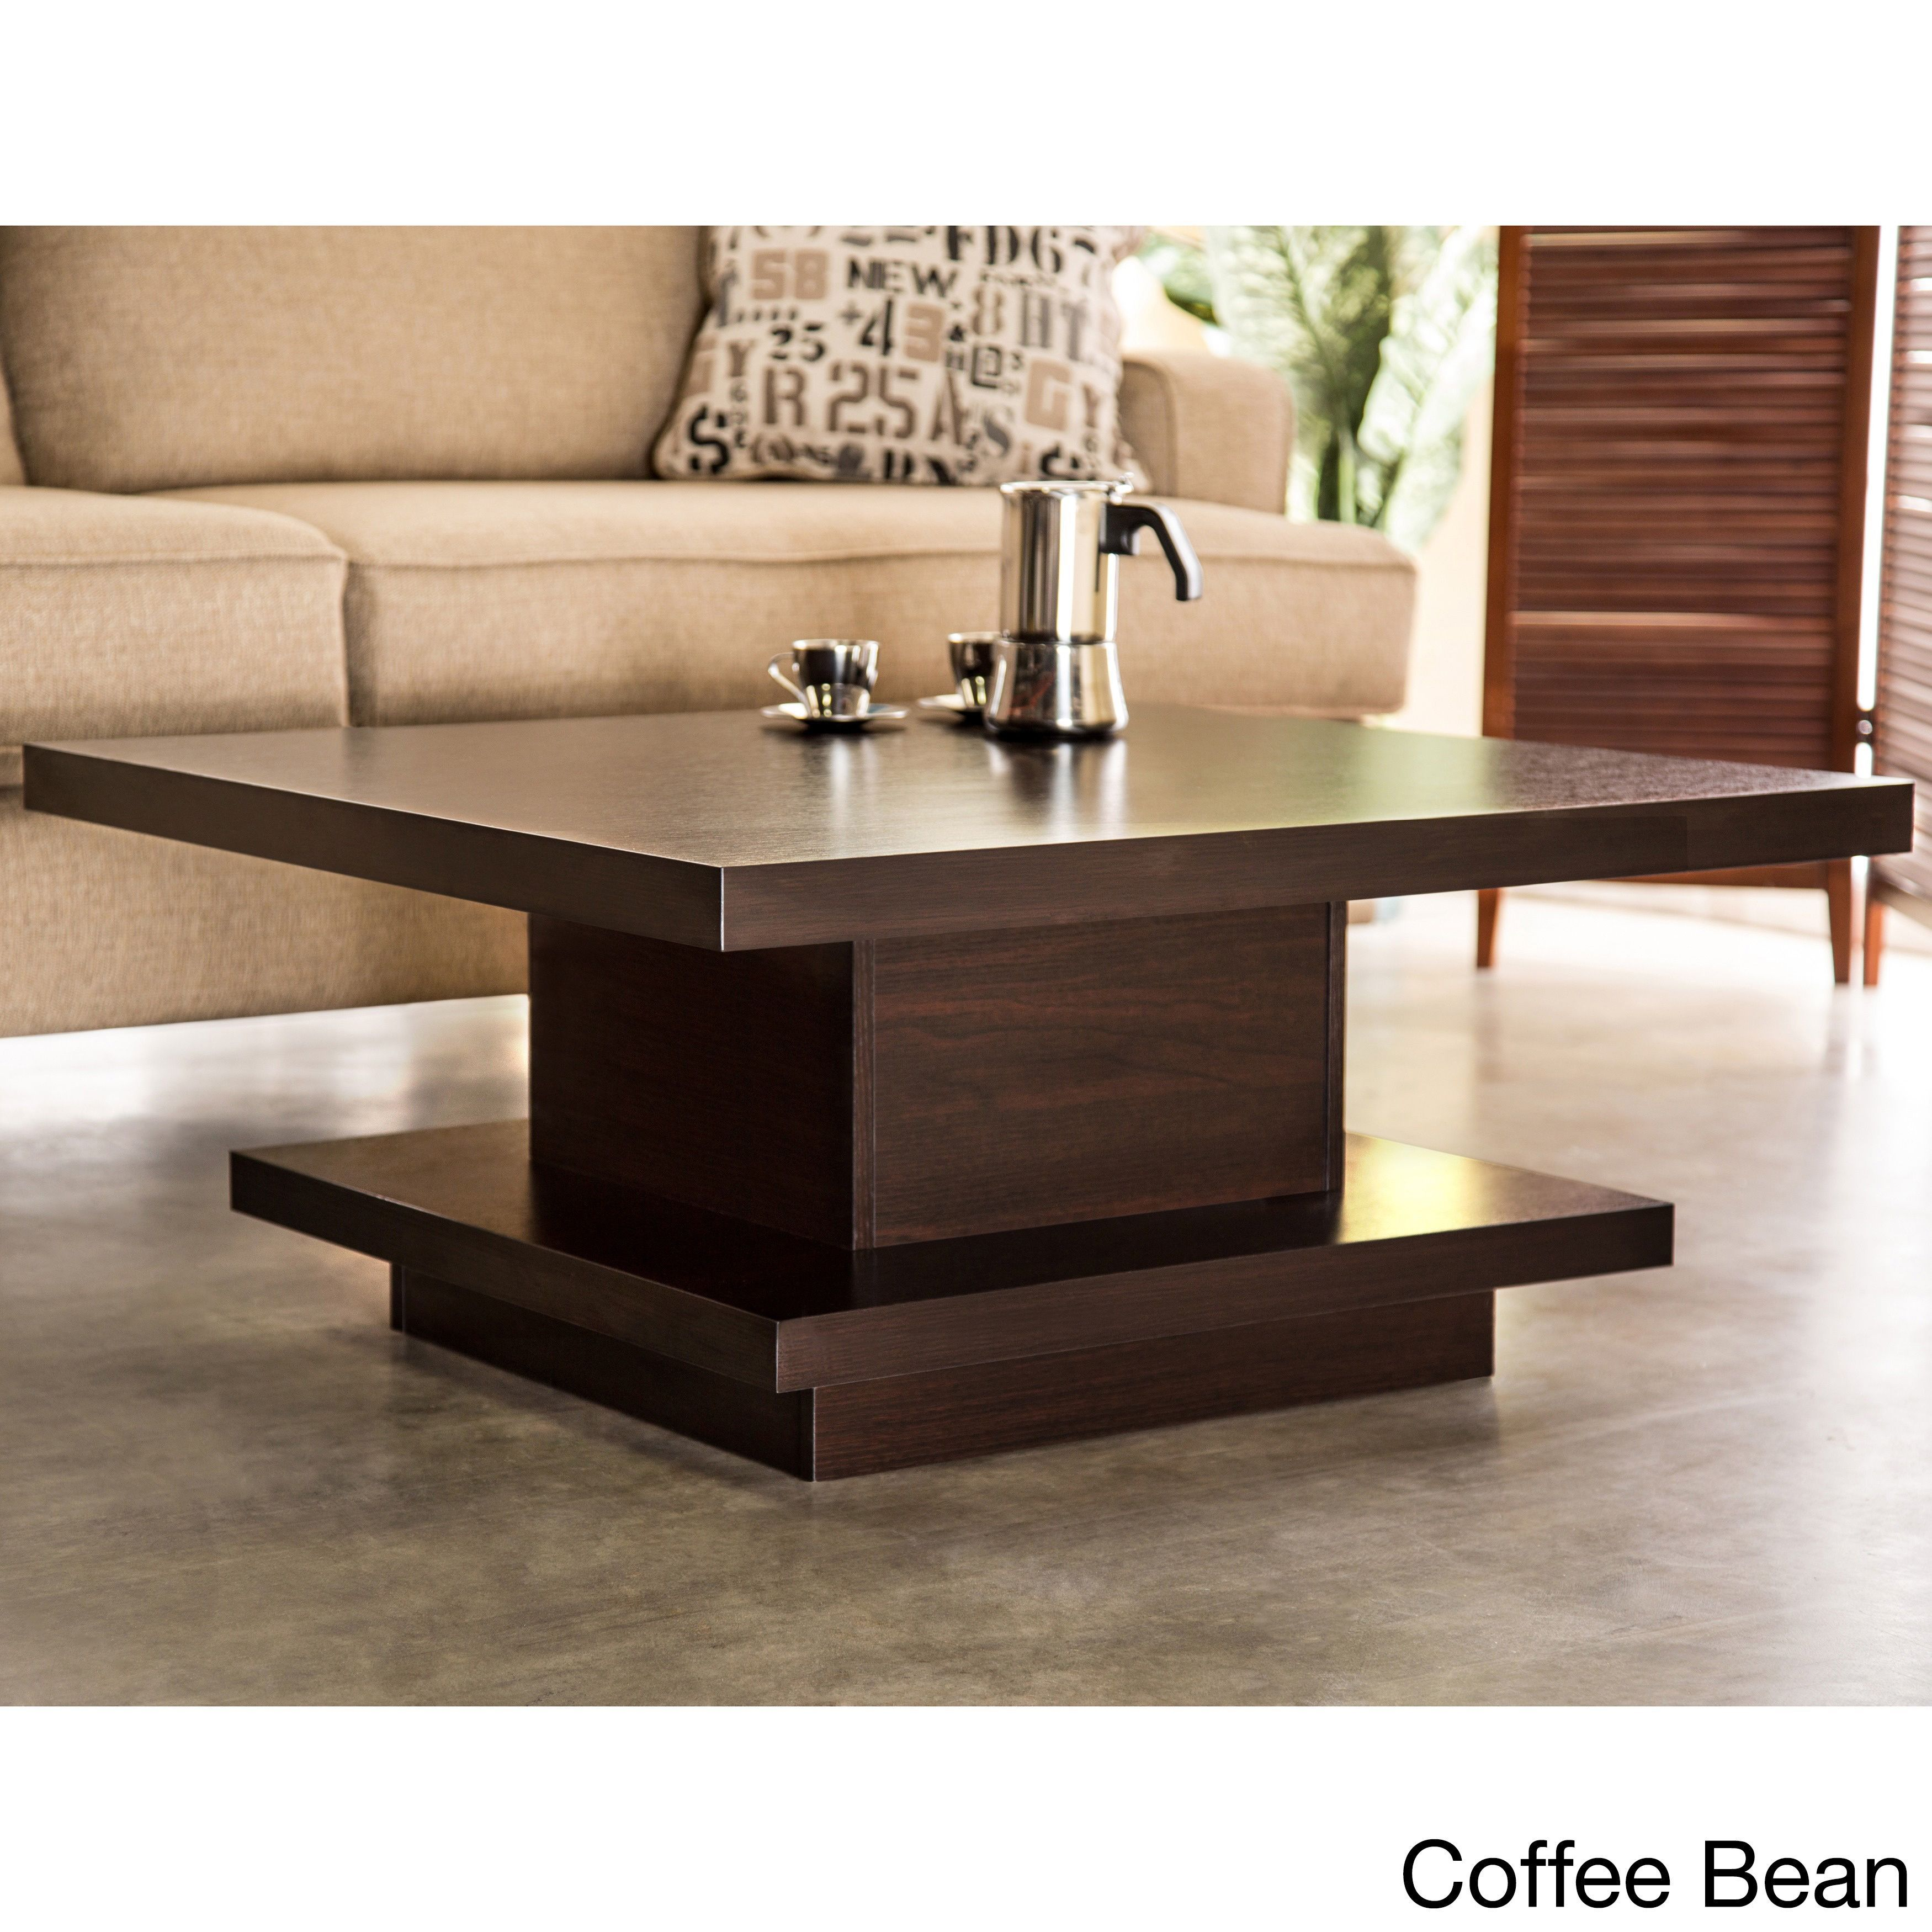 Overstock Com Online Shopping Bedding Furniture Electronics Jewelry Clothing More Center Table Living Room Centre Table Living Room Living Room Table [ 3500 x 3500 Pixel ]